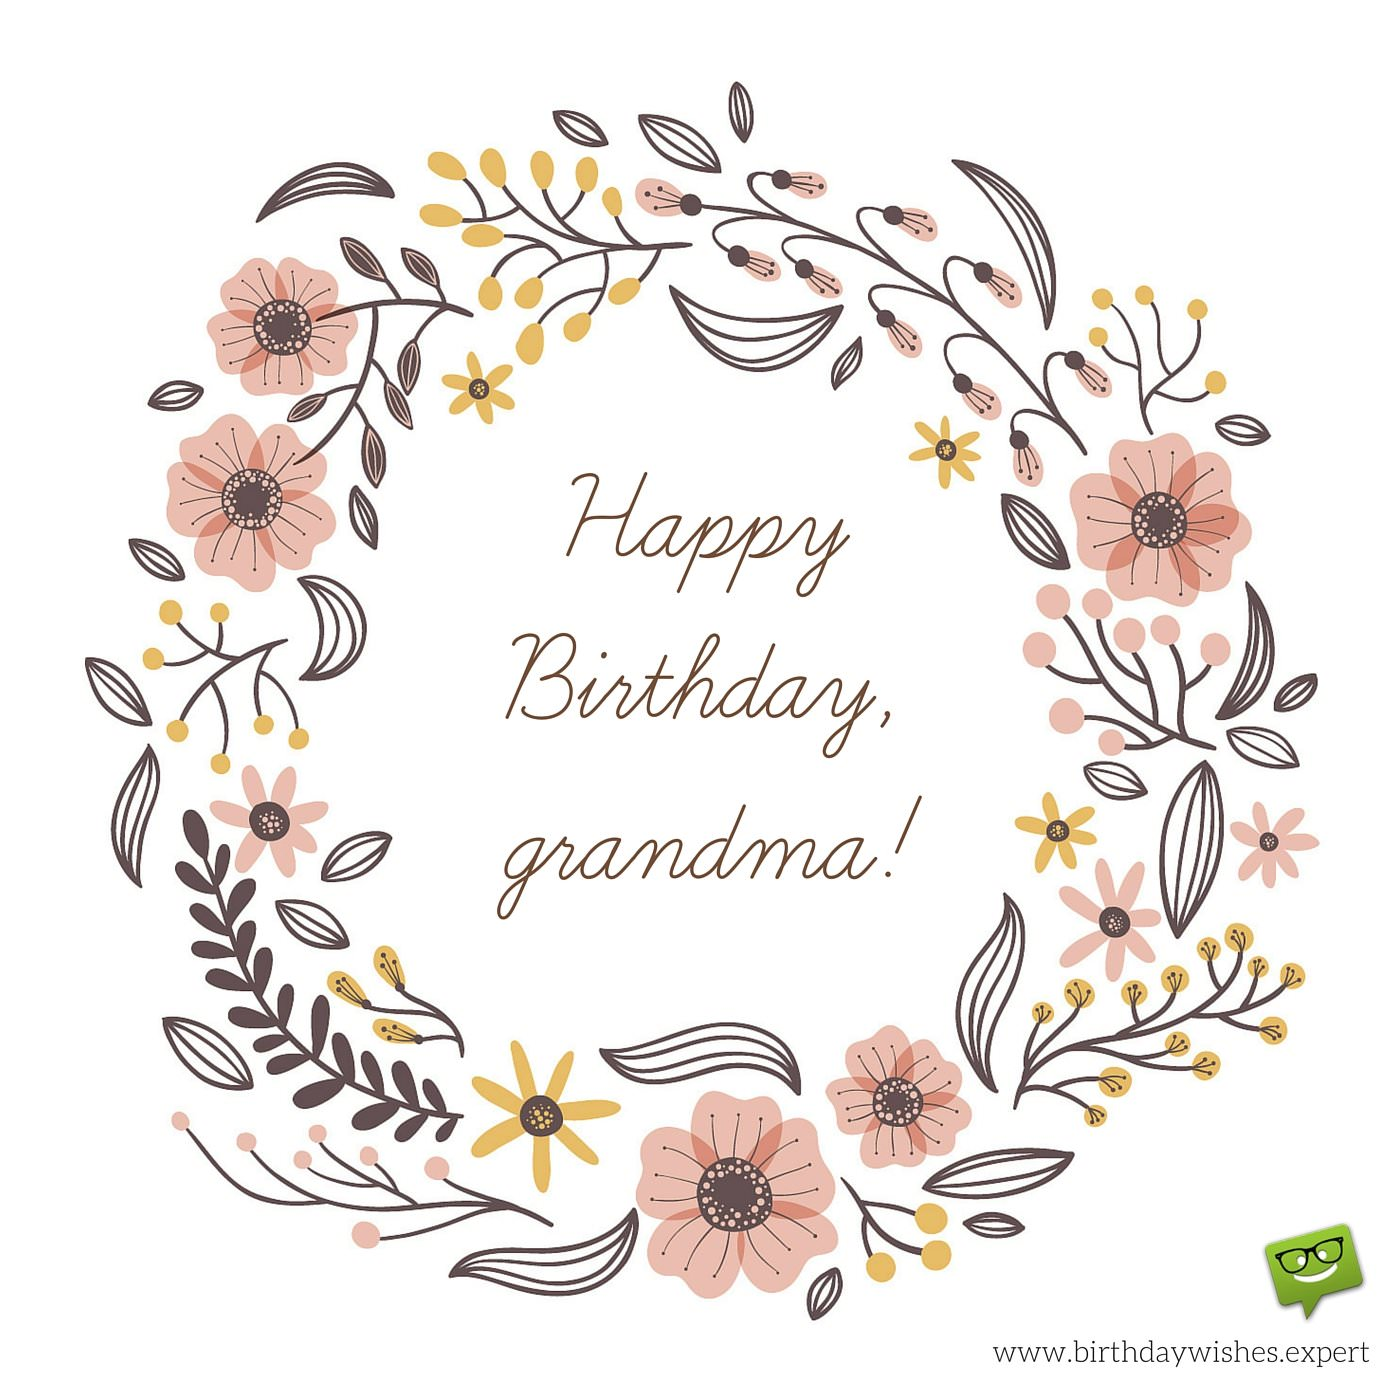 Unique Gifts Ideas Happy Birthday Grandma On Image With Hand Drawn Flowers